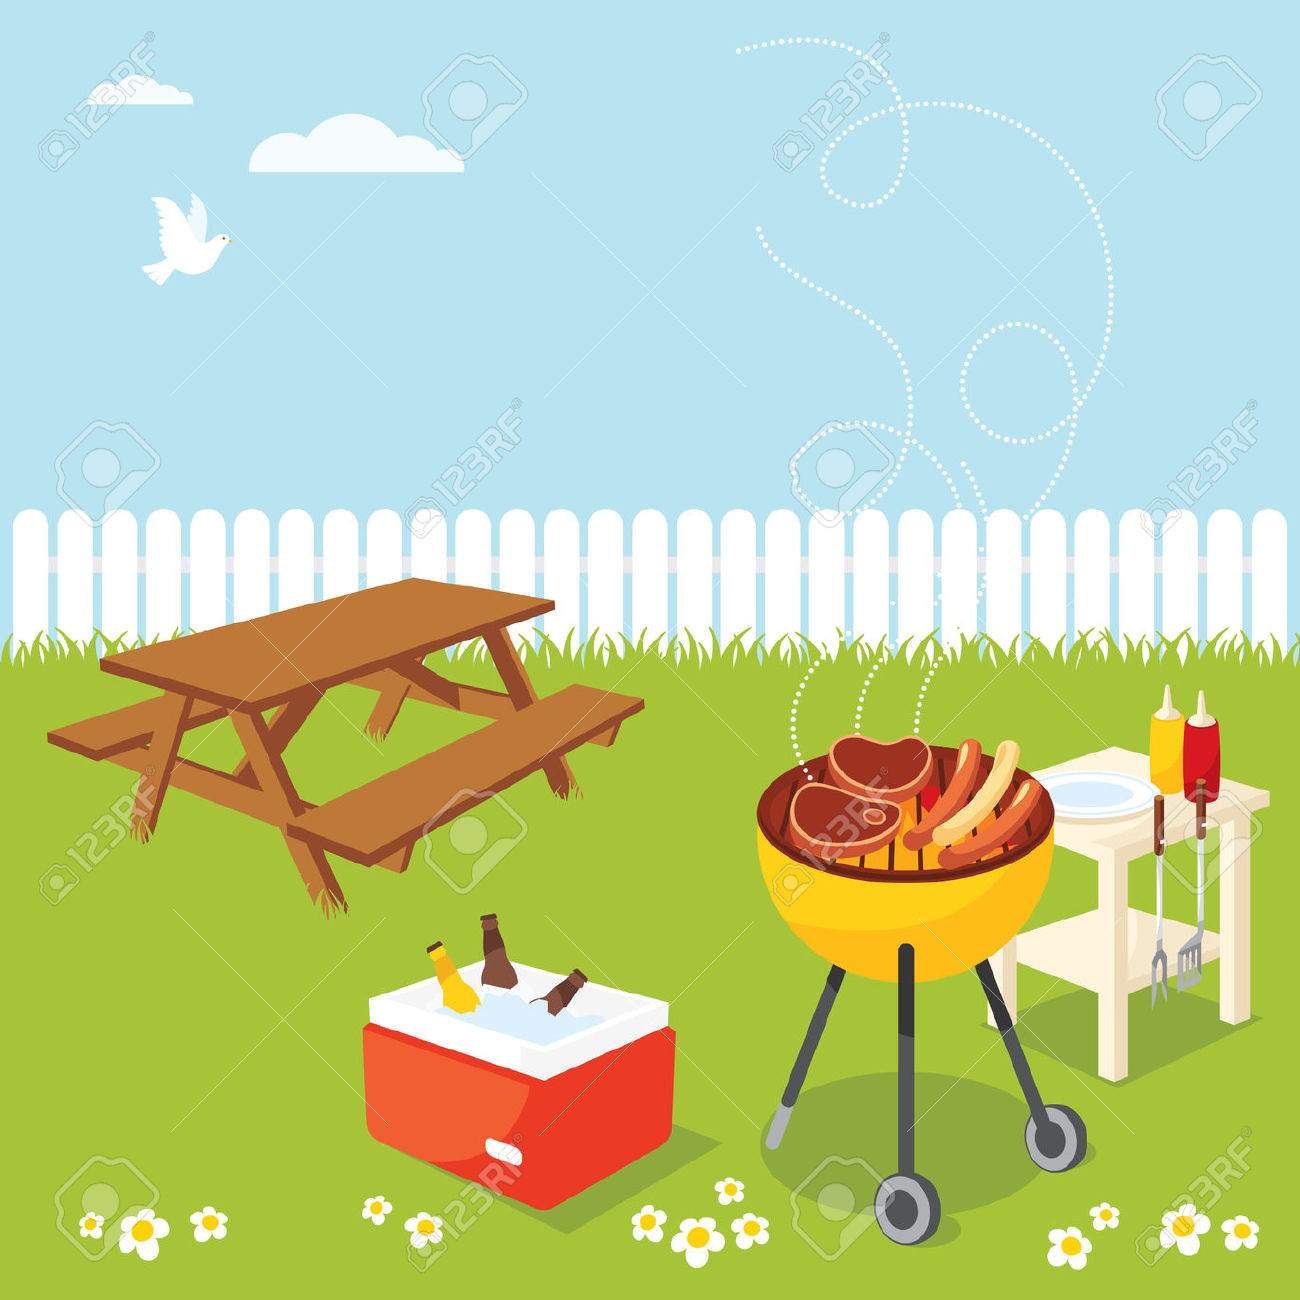 Clipart barbecue party image transparent stock Bbq Party Clipart | Clipart Panda - Free Clipart Images image transparent stock